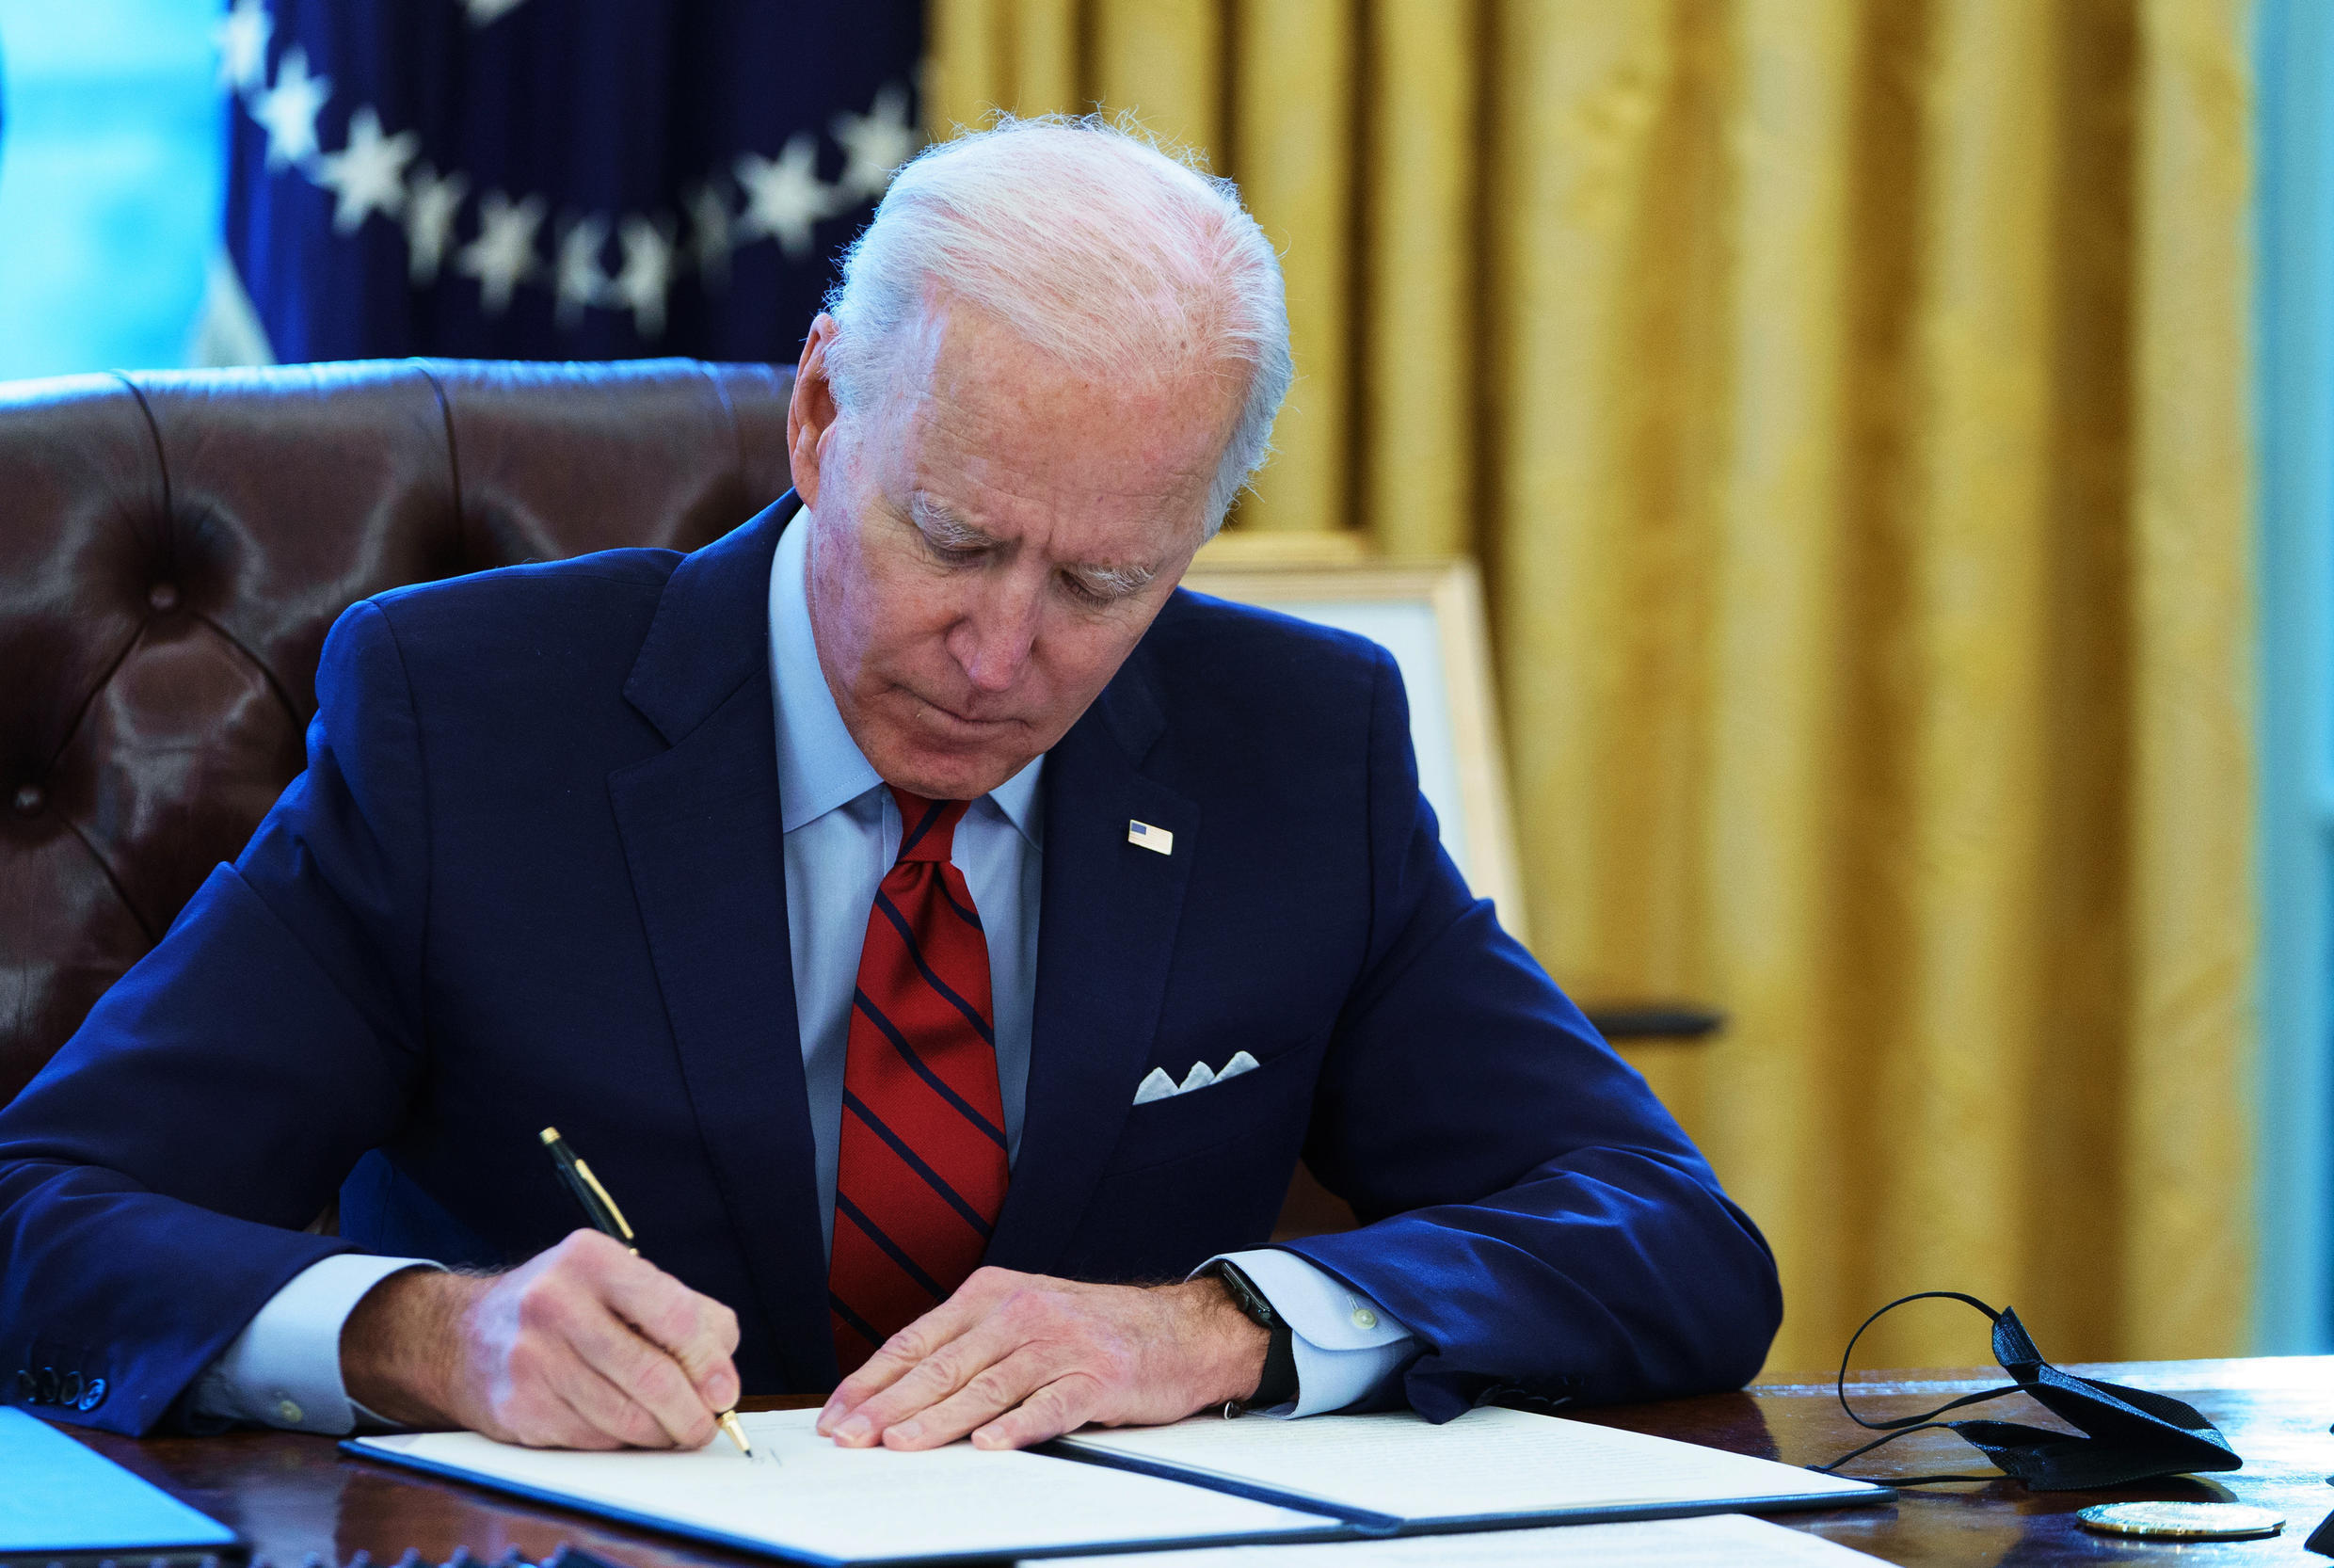 President Joe Biden will sign a series of executive orders aimed at reforming the US immigration process, signaling a return to a more inclusive policy